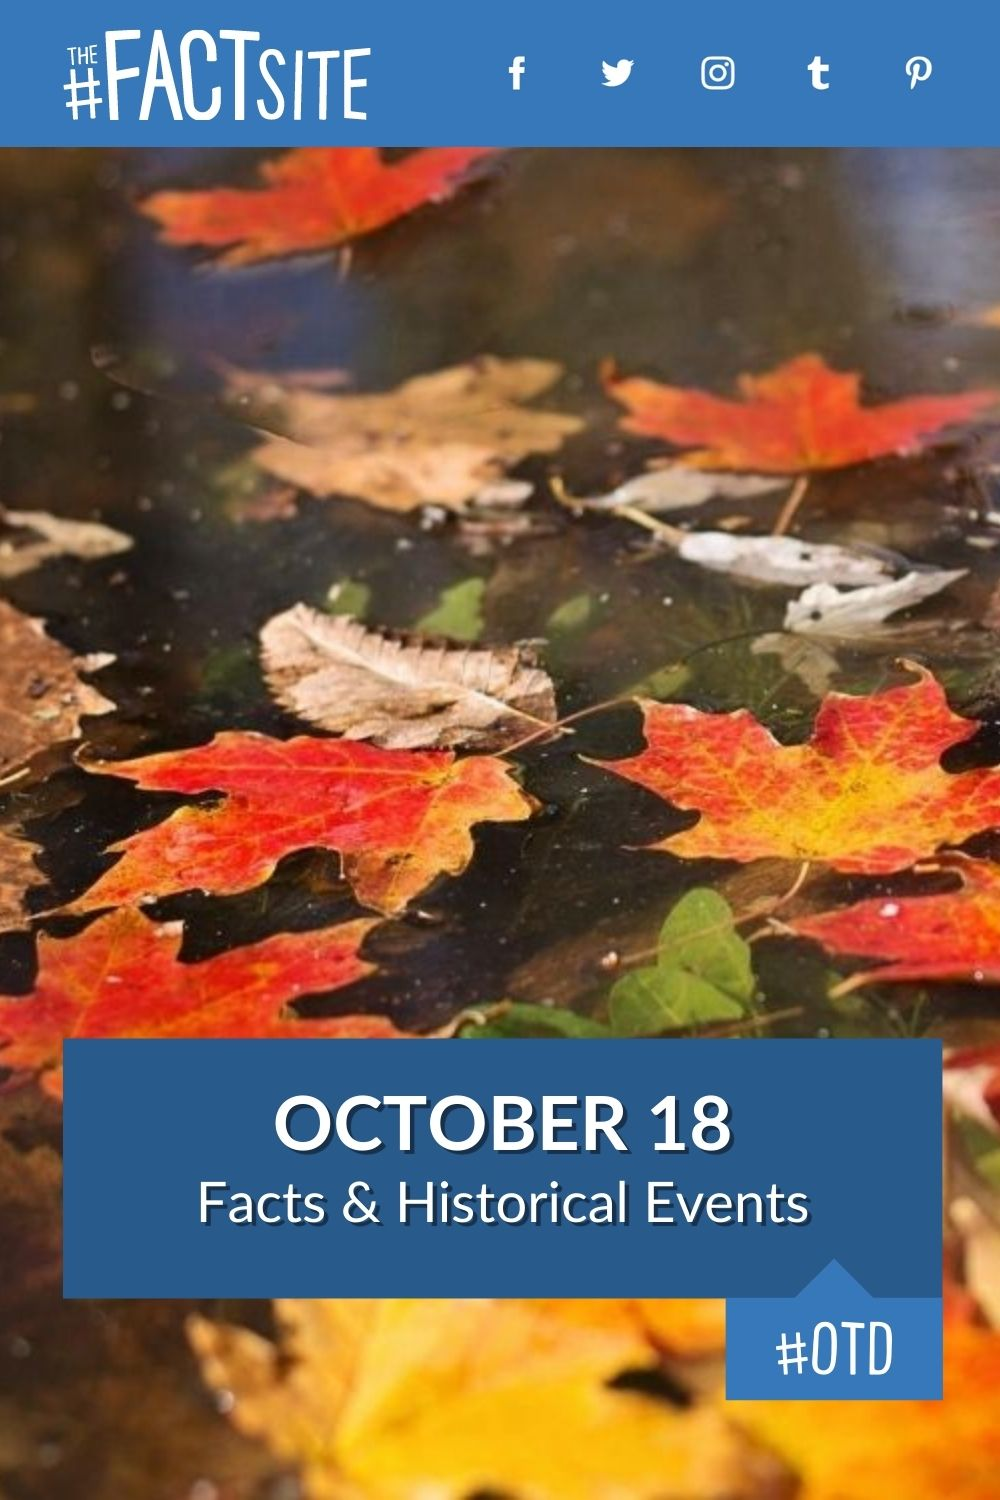 Facts & Historic Events That Happened on October 18